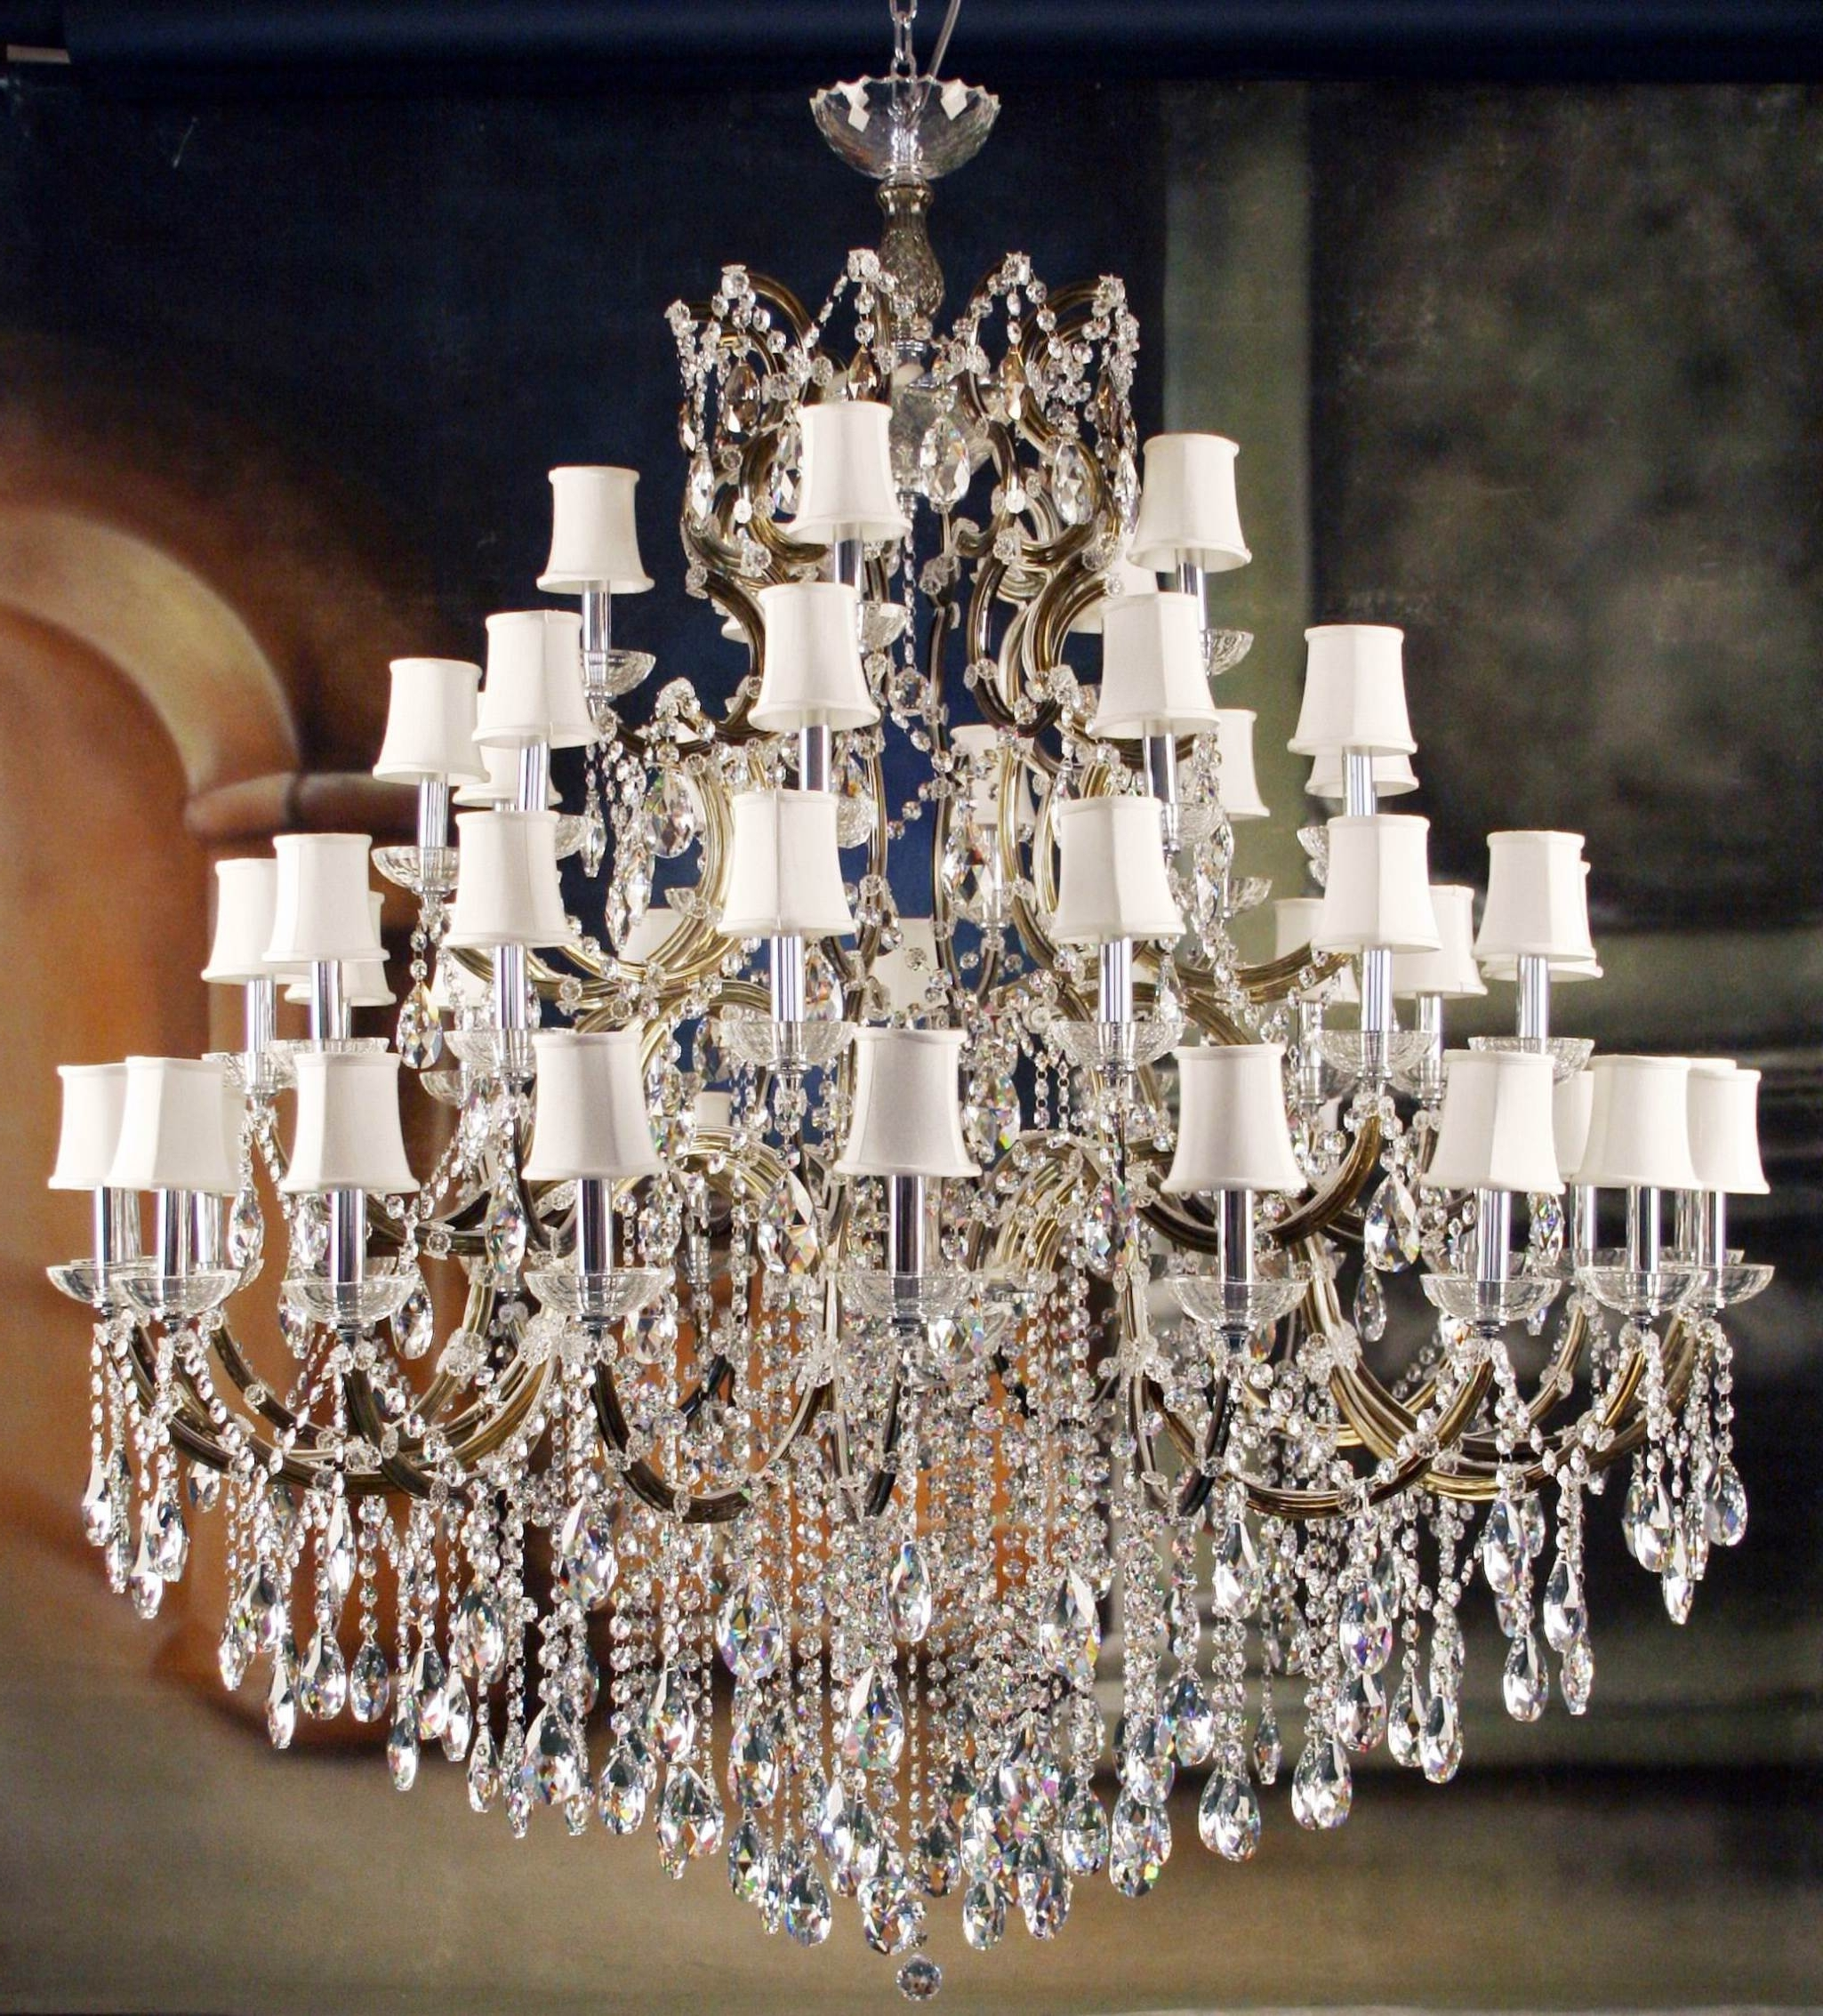 Most Recent Light : Fancy Living Room High Quality Crystal Chandeliers For Home Pertaining To Crystal Chandeliers With Shades (View 11 of 15)